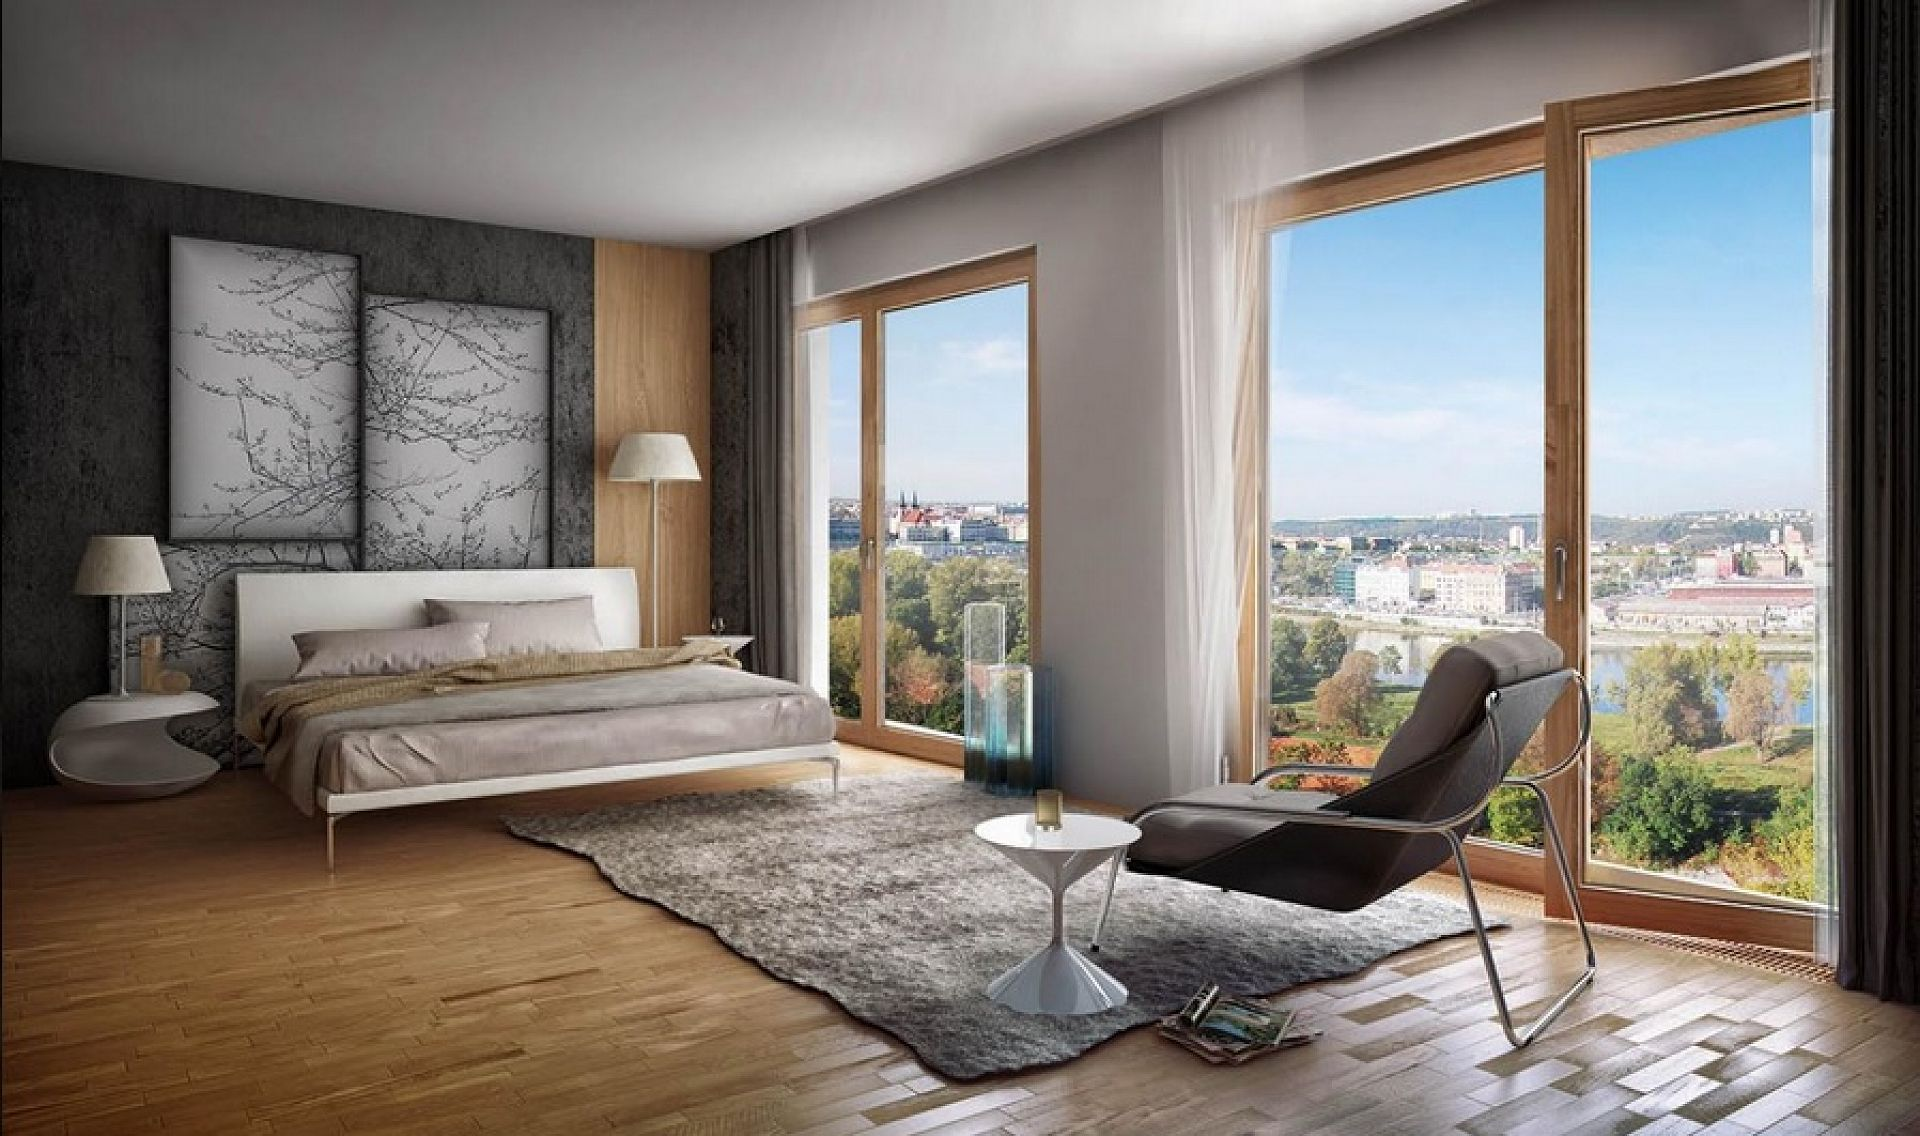 Rohansk n b e karl n prague 8 sale apartment two for A bedroom has a length of x 3